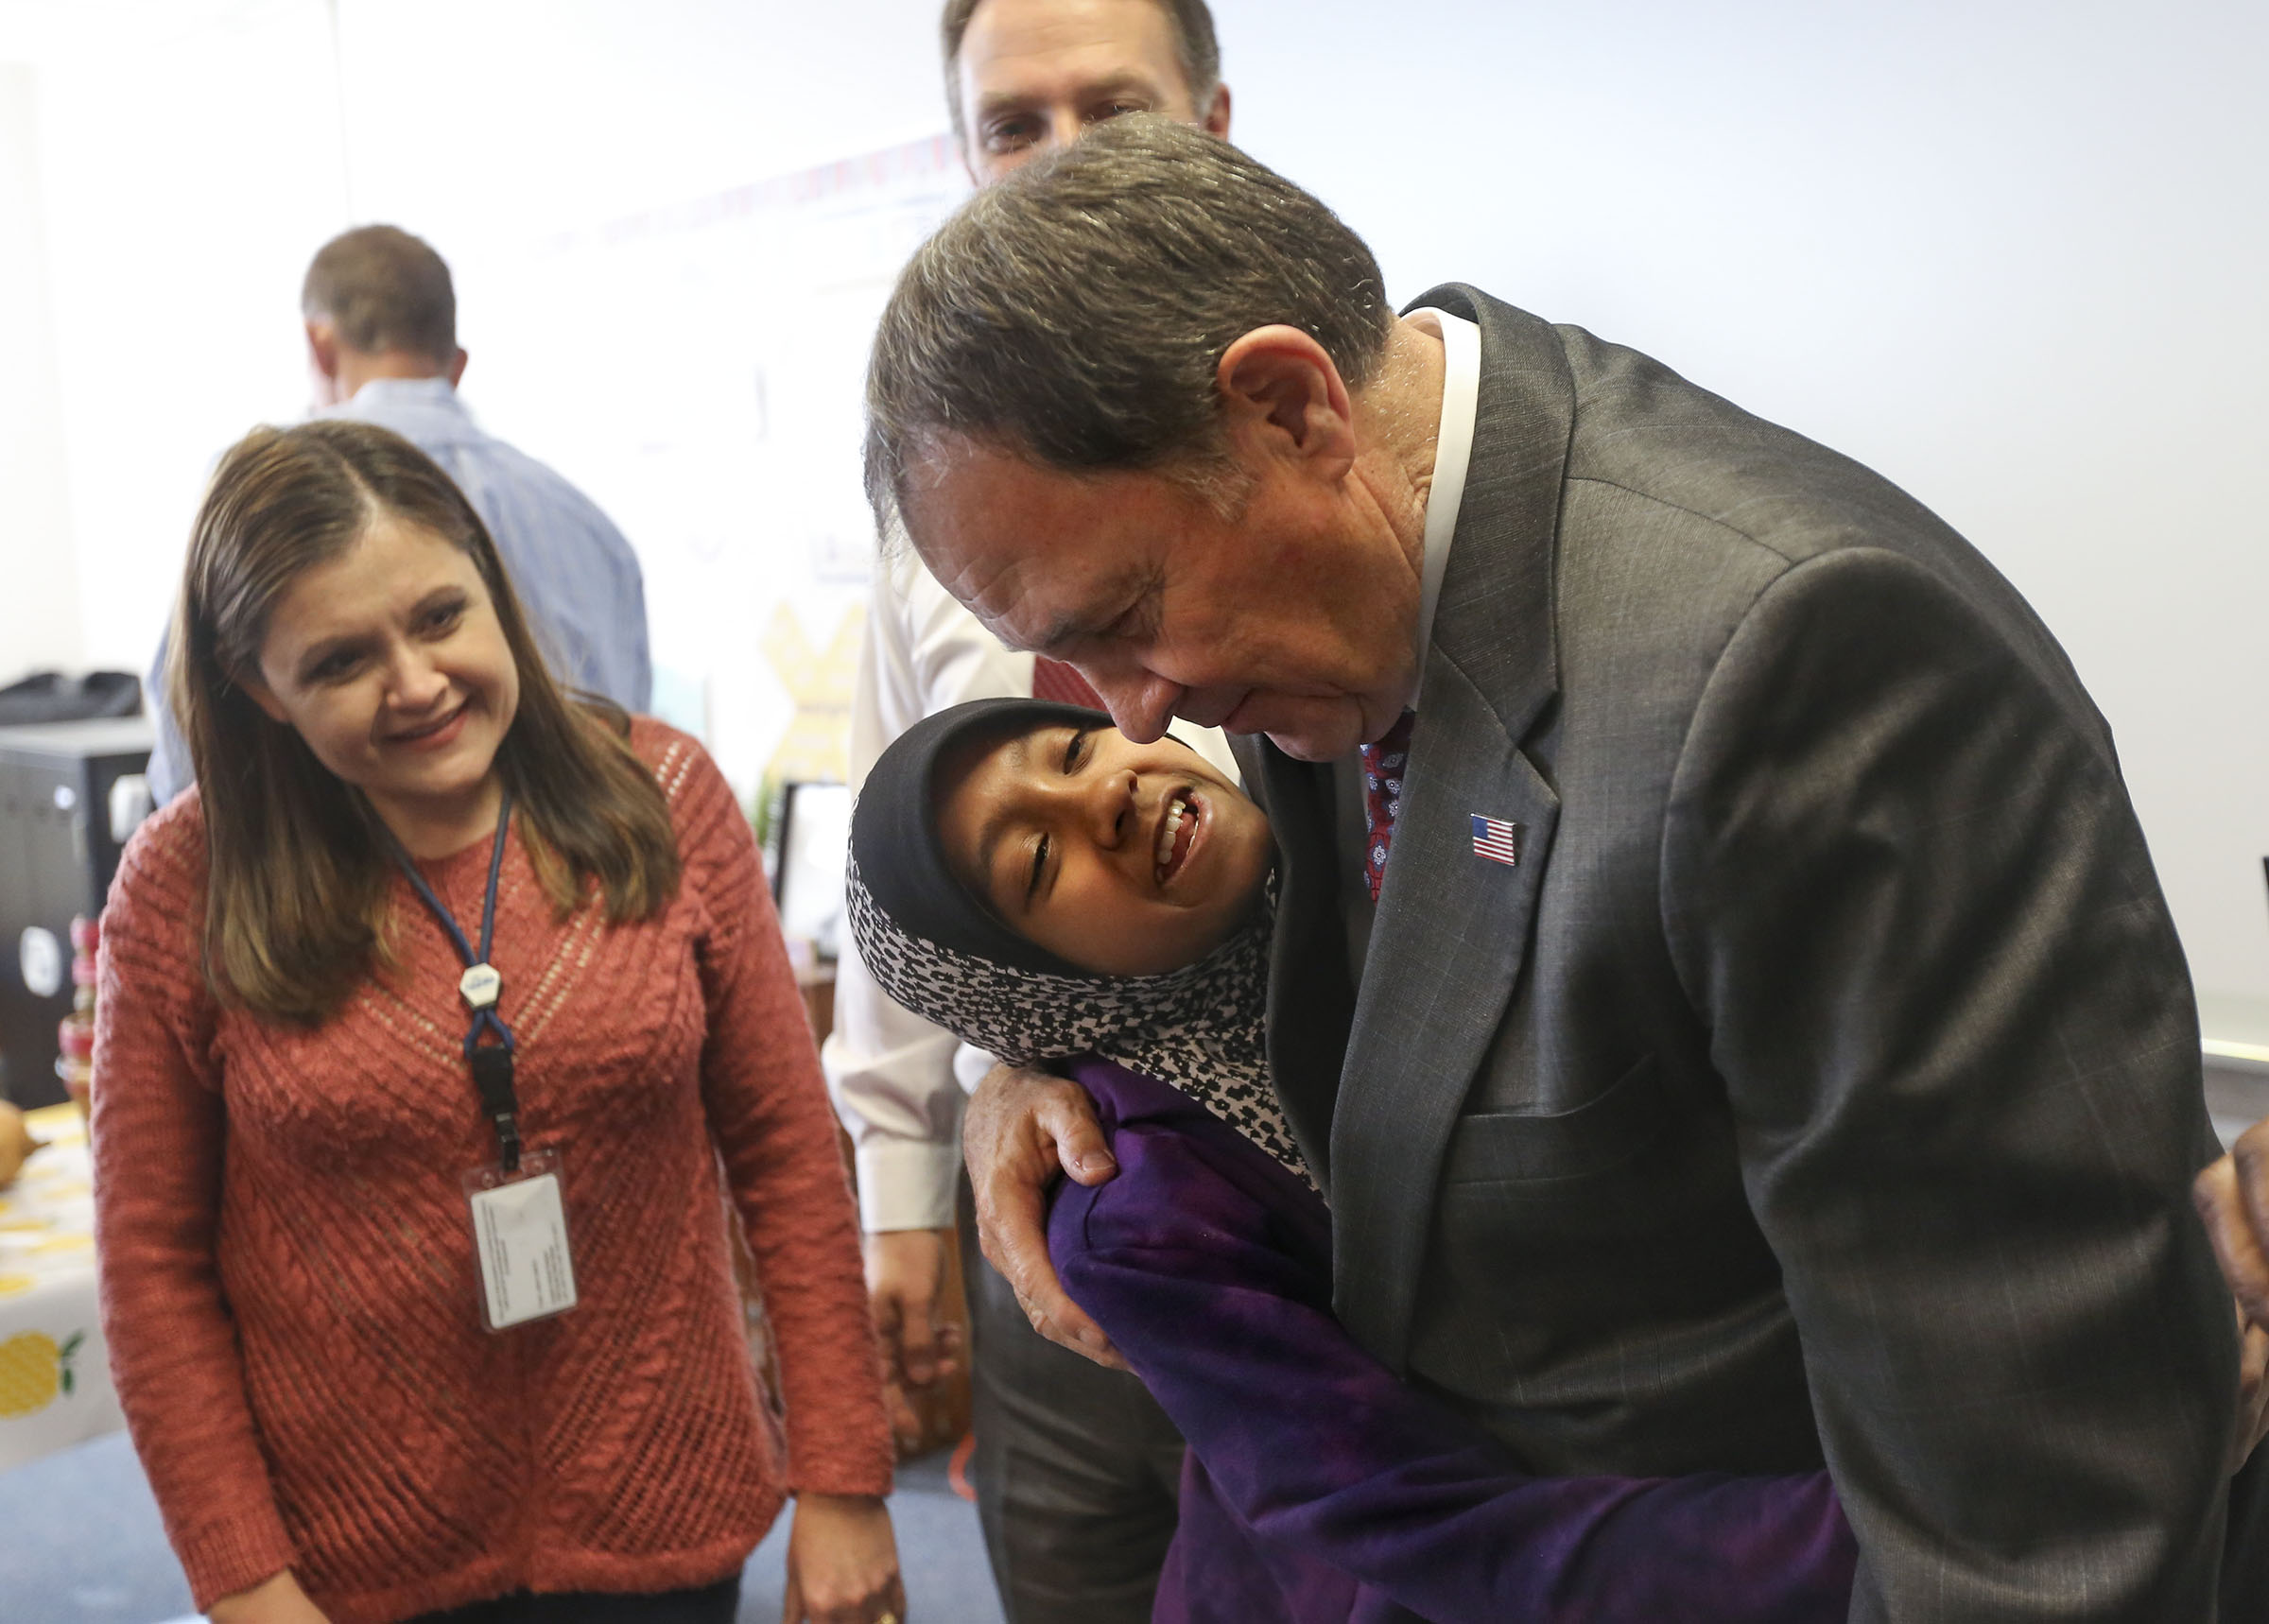 Zaidah Mohamad hugs Gov. Gary Herbert after Herbert proclaimed Tuesday, Nov. 26, 2019, as Harvest Gratitude Day during an event at Lincoln Elementary School in South Salt Lake.